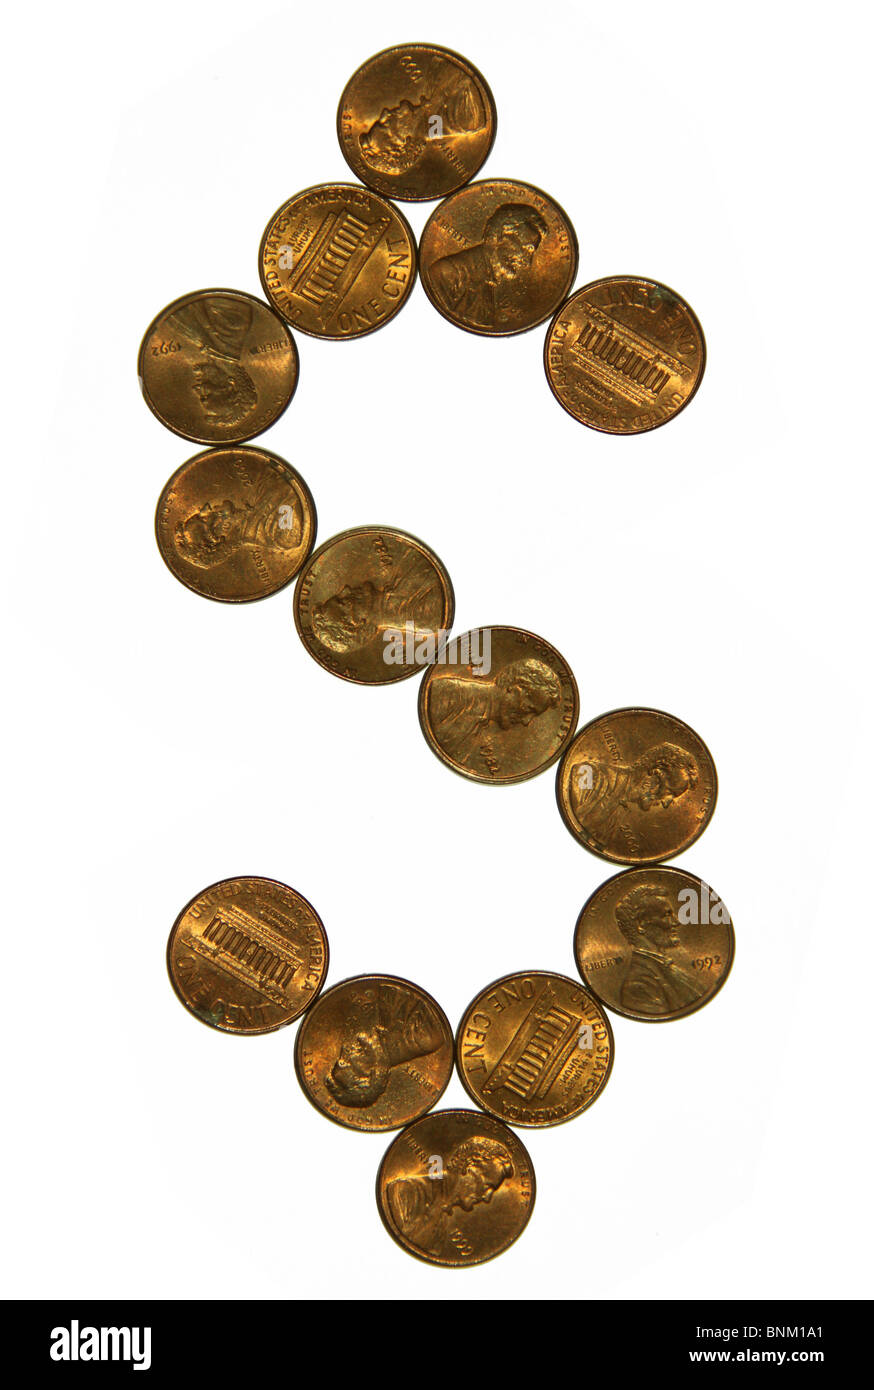 Cutout of US one cent coins money in dollar sign shape - Stock Image